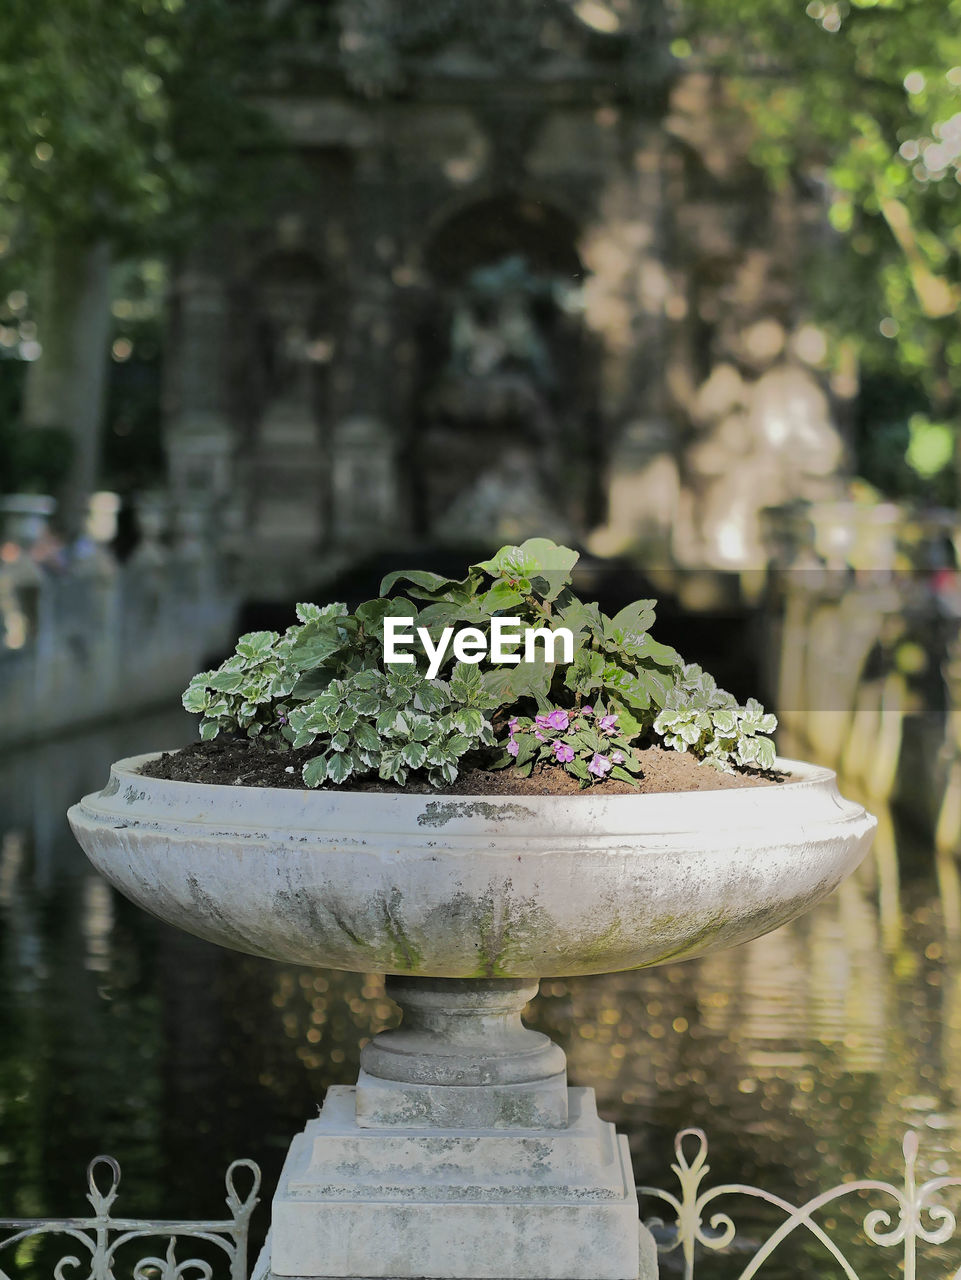 plant, growth, focus on foreground, day, nature, flower, flowering plant, no people, green color, architecture, water, outdoors, freshness, built structure, potted plant, garden, close-up, beauty in nature, leaf, flower pot